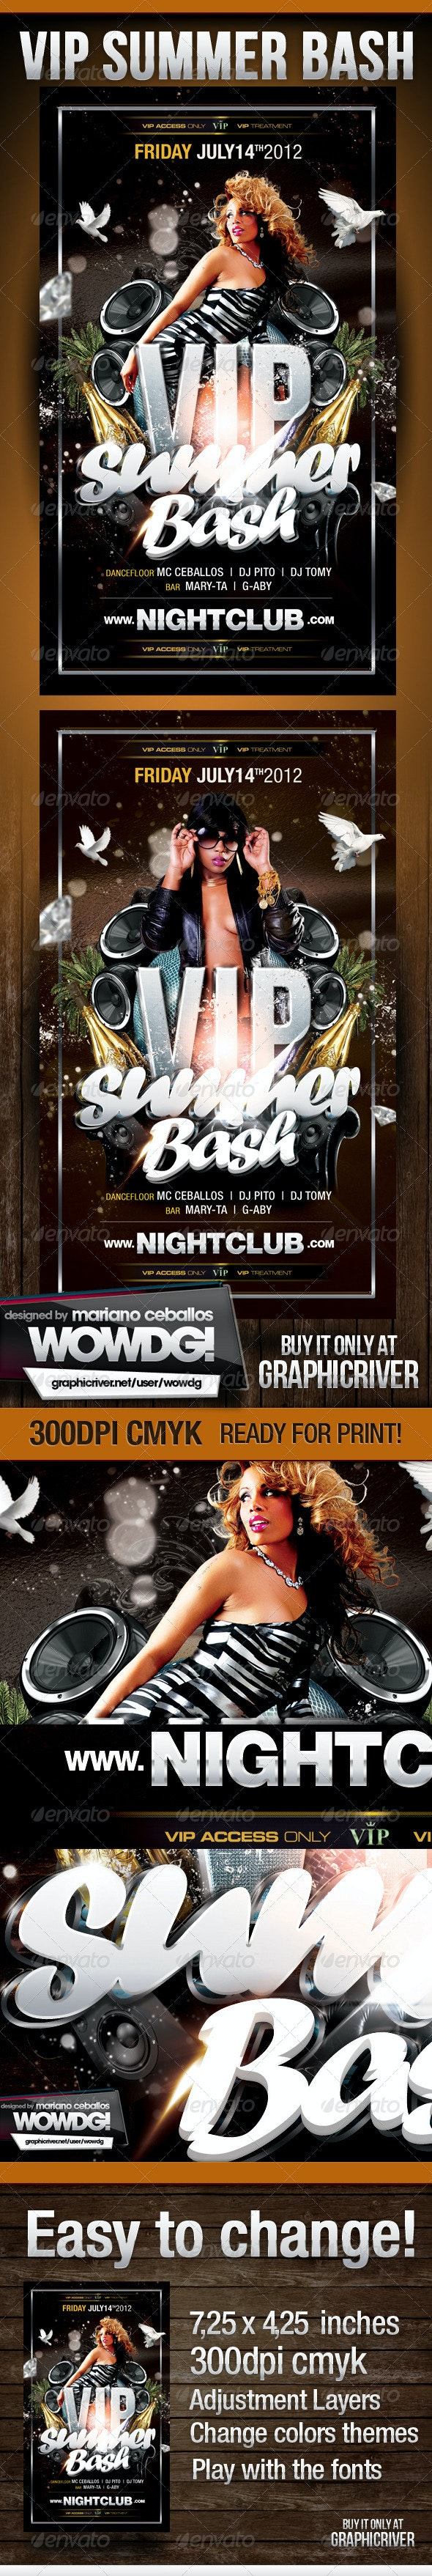 Vip Summer Bash Party Flyer Template - Clubs & Parties Events